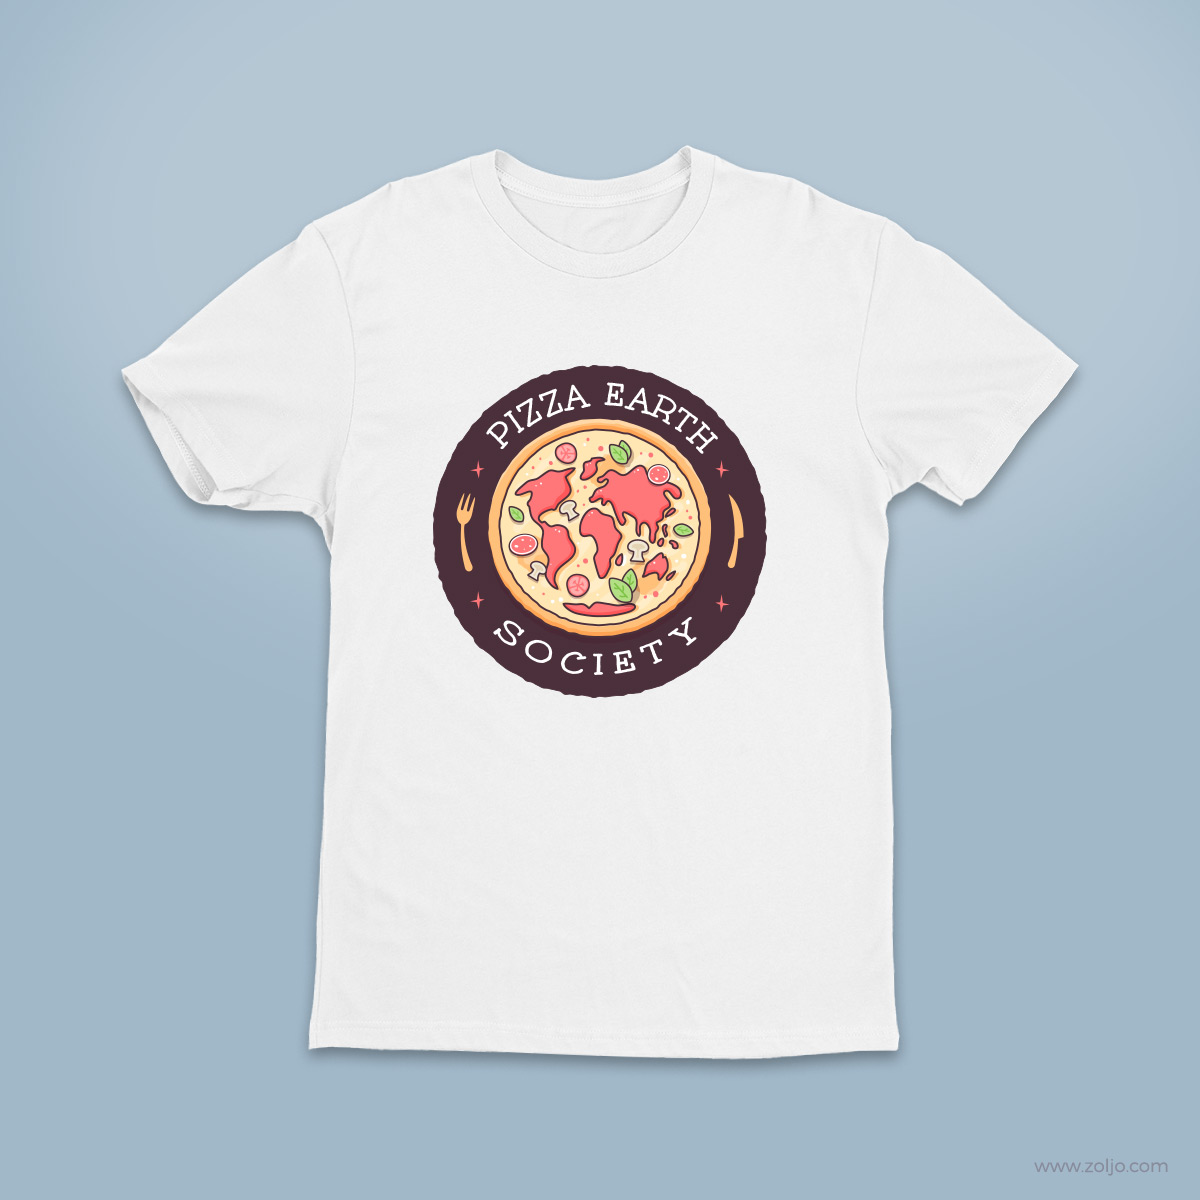 Pizza Earth Society T-shirt, stickers,mugs,merchandise